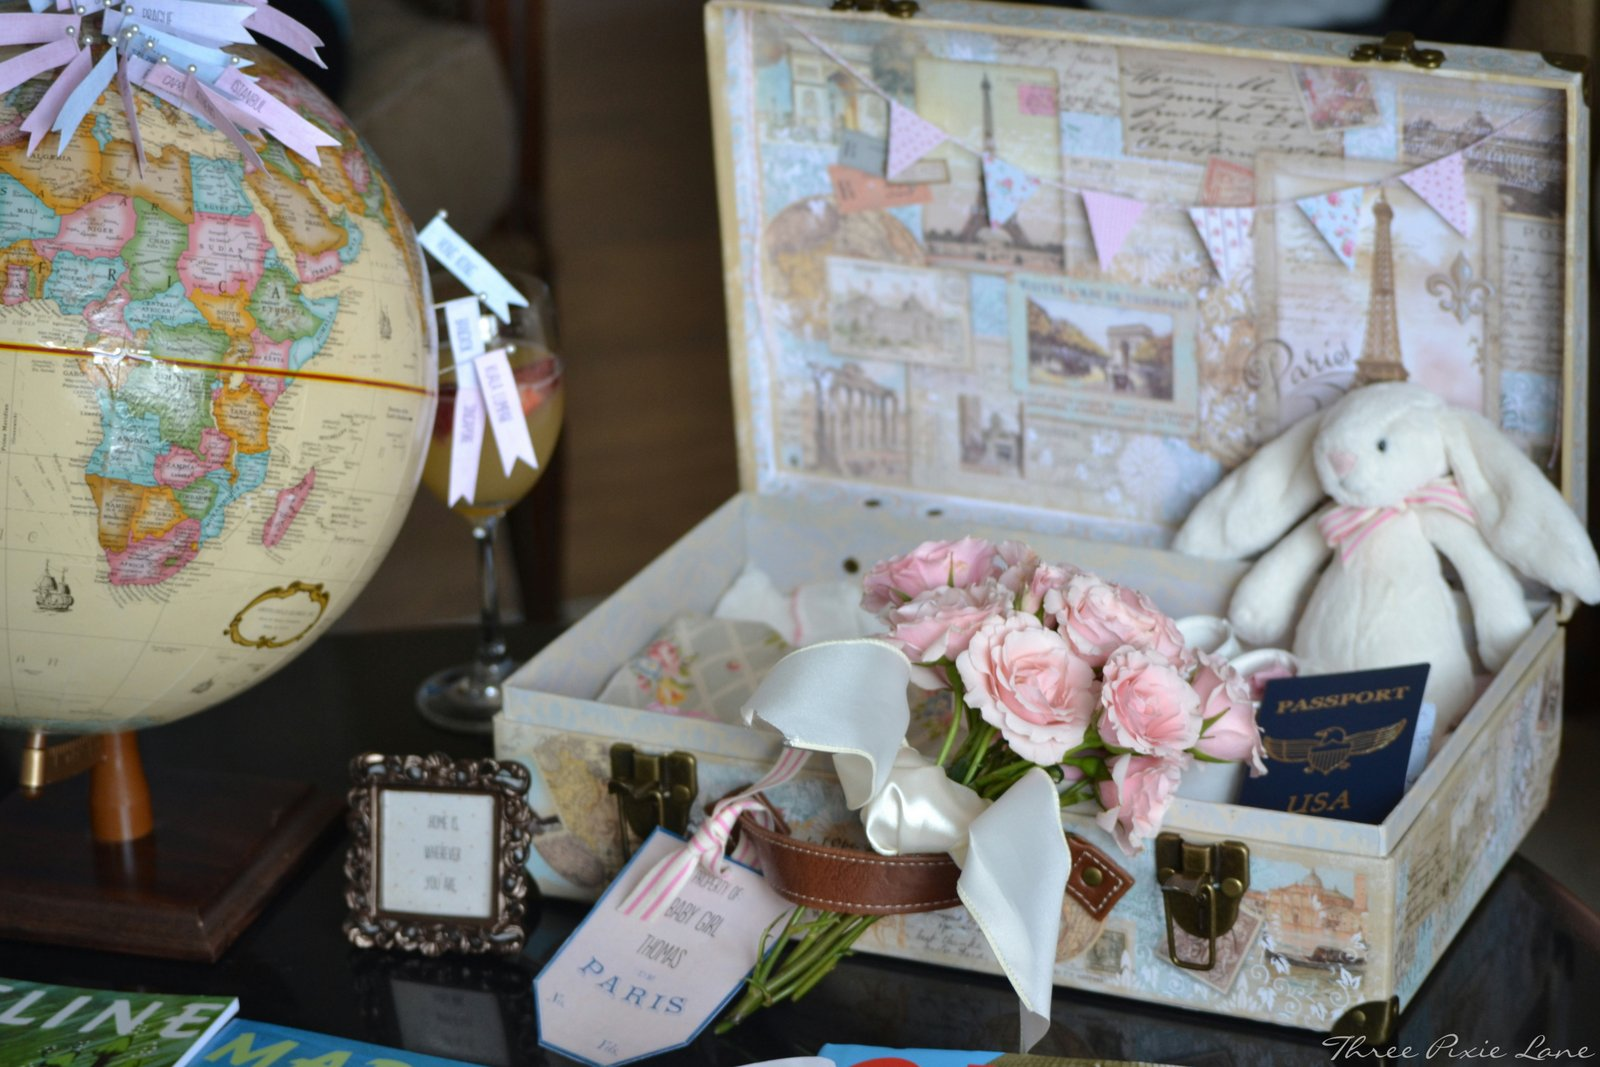 Travel Theme Ideas Three Pixie Lane A Travel Themed Baby Shower Oh Baby